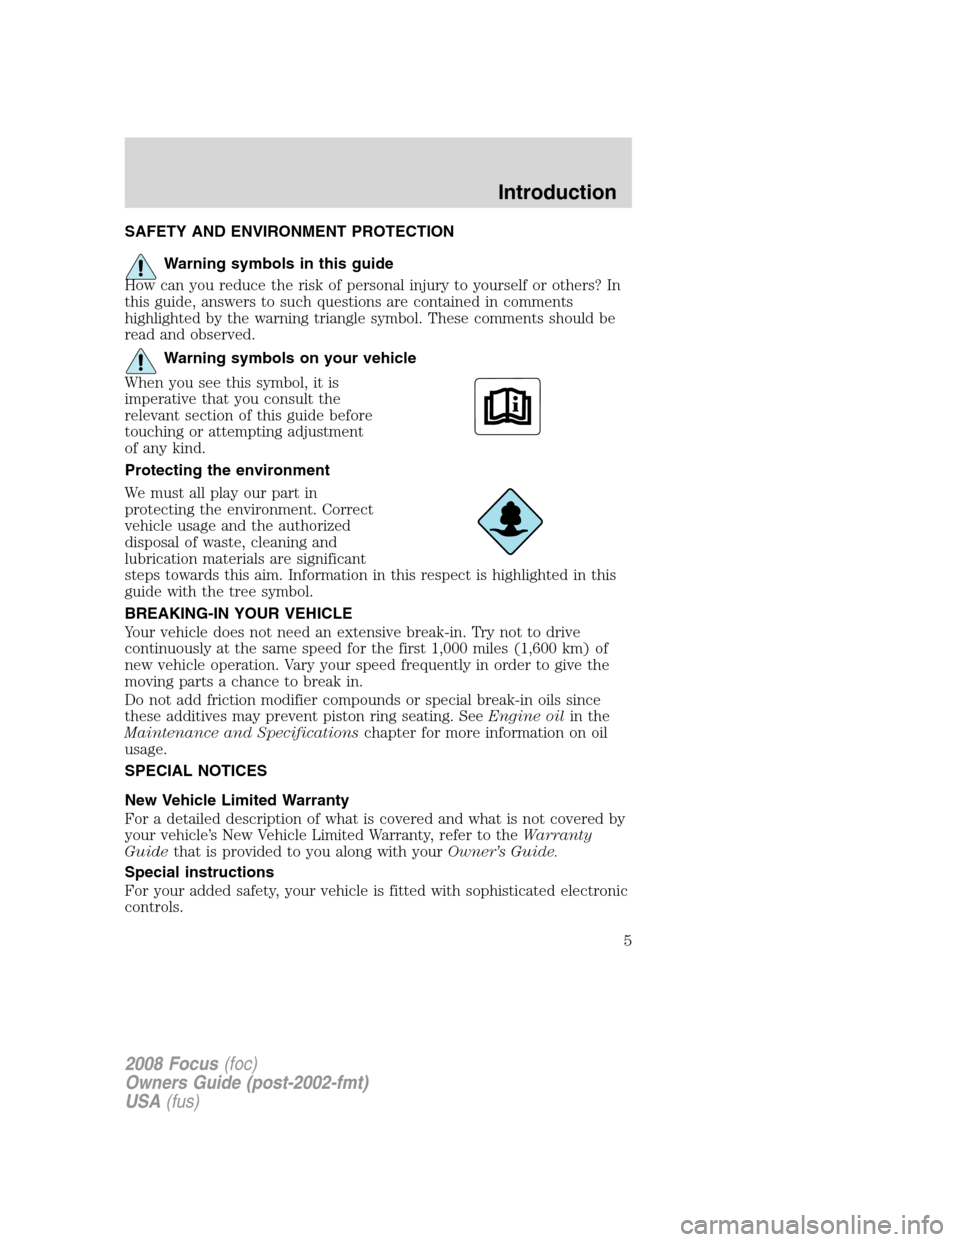 FORD FOCUS 2008 2.G Owners Manual SAFETY AND ENVIRONMENT PROTECTION Warning symbols in this guide How can you reduce the risk of personal injury to yourself or others? In this guide, answers to such questions are contained in comments